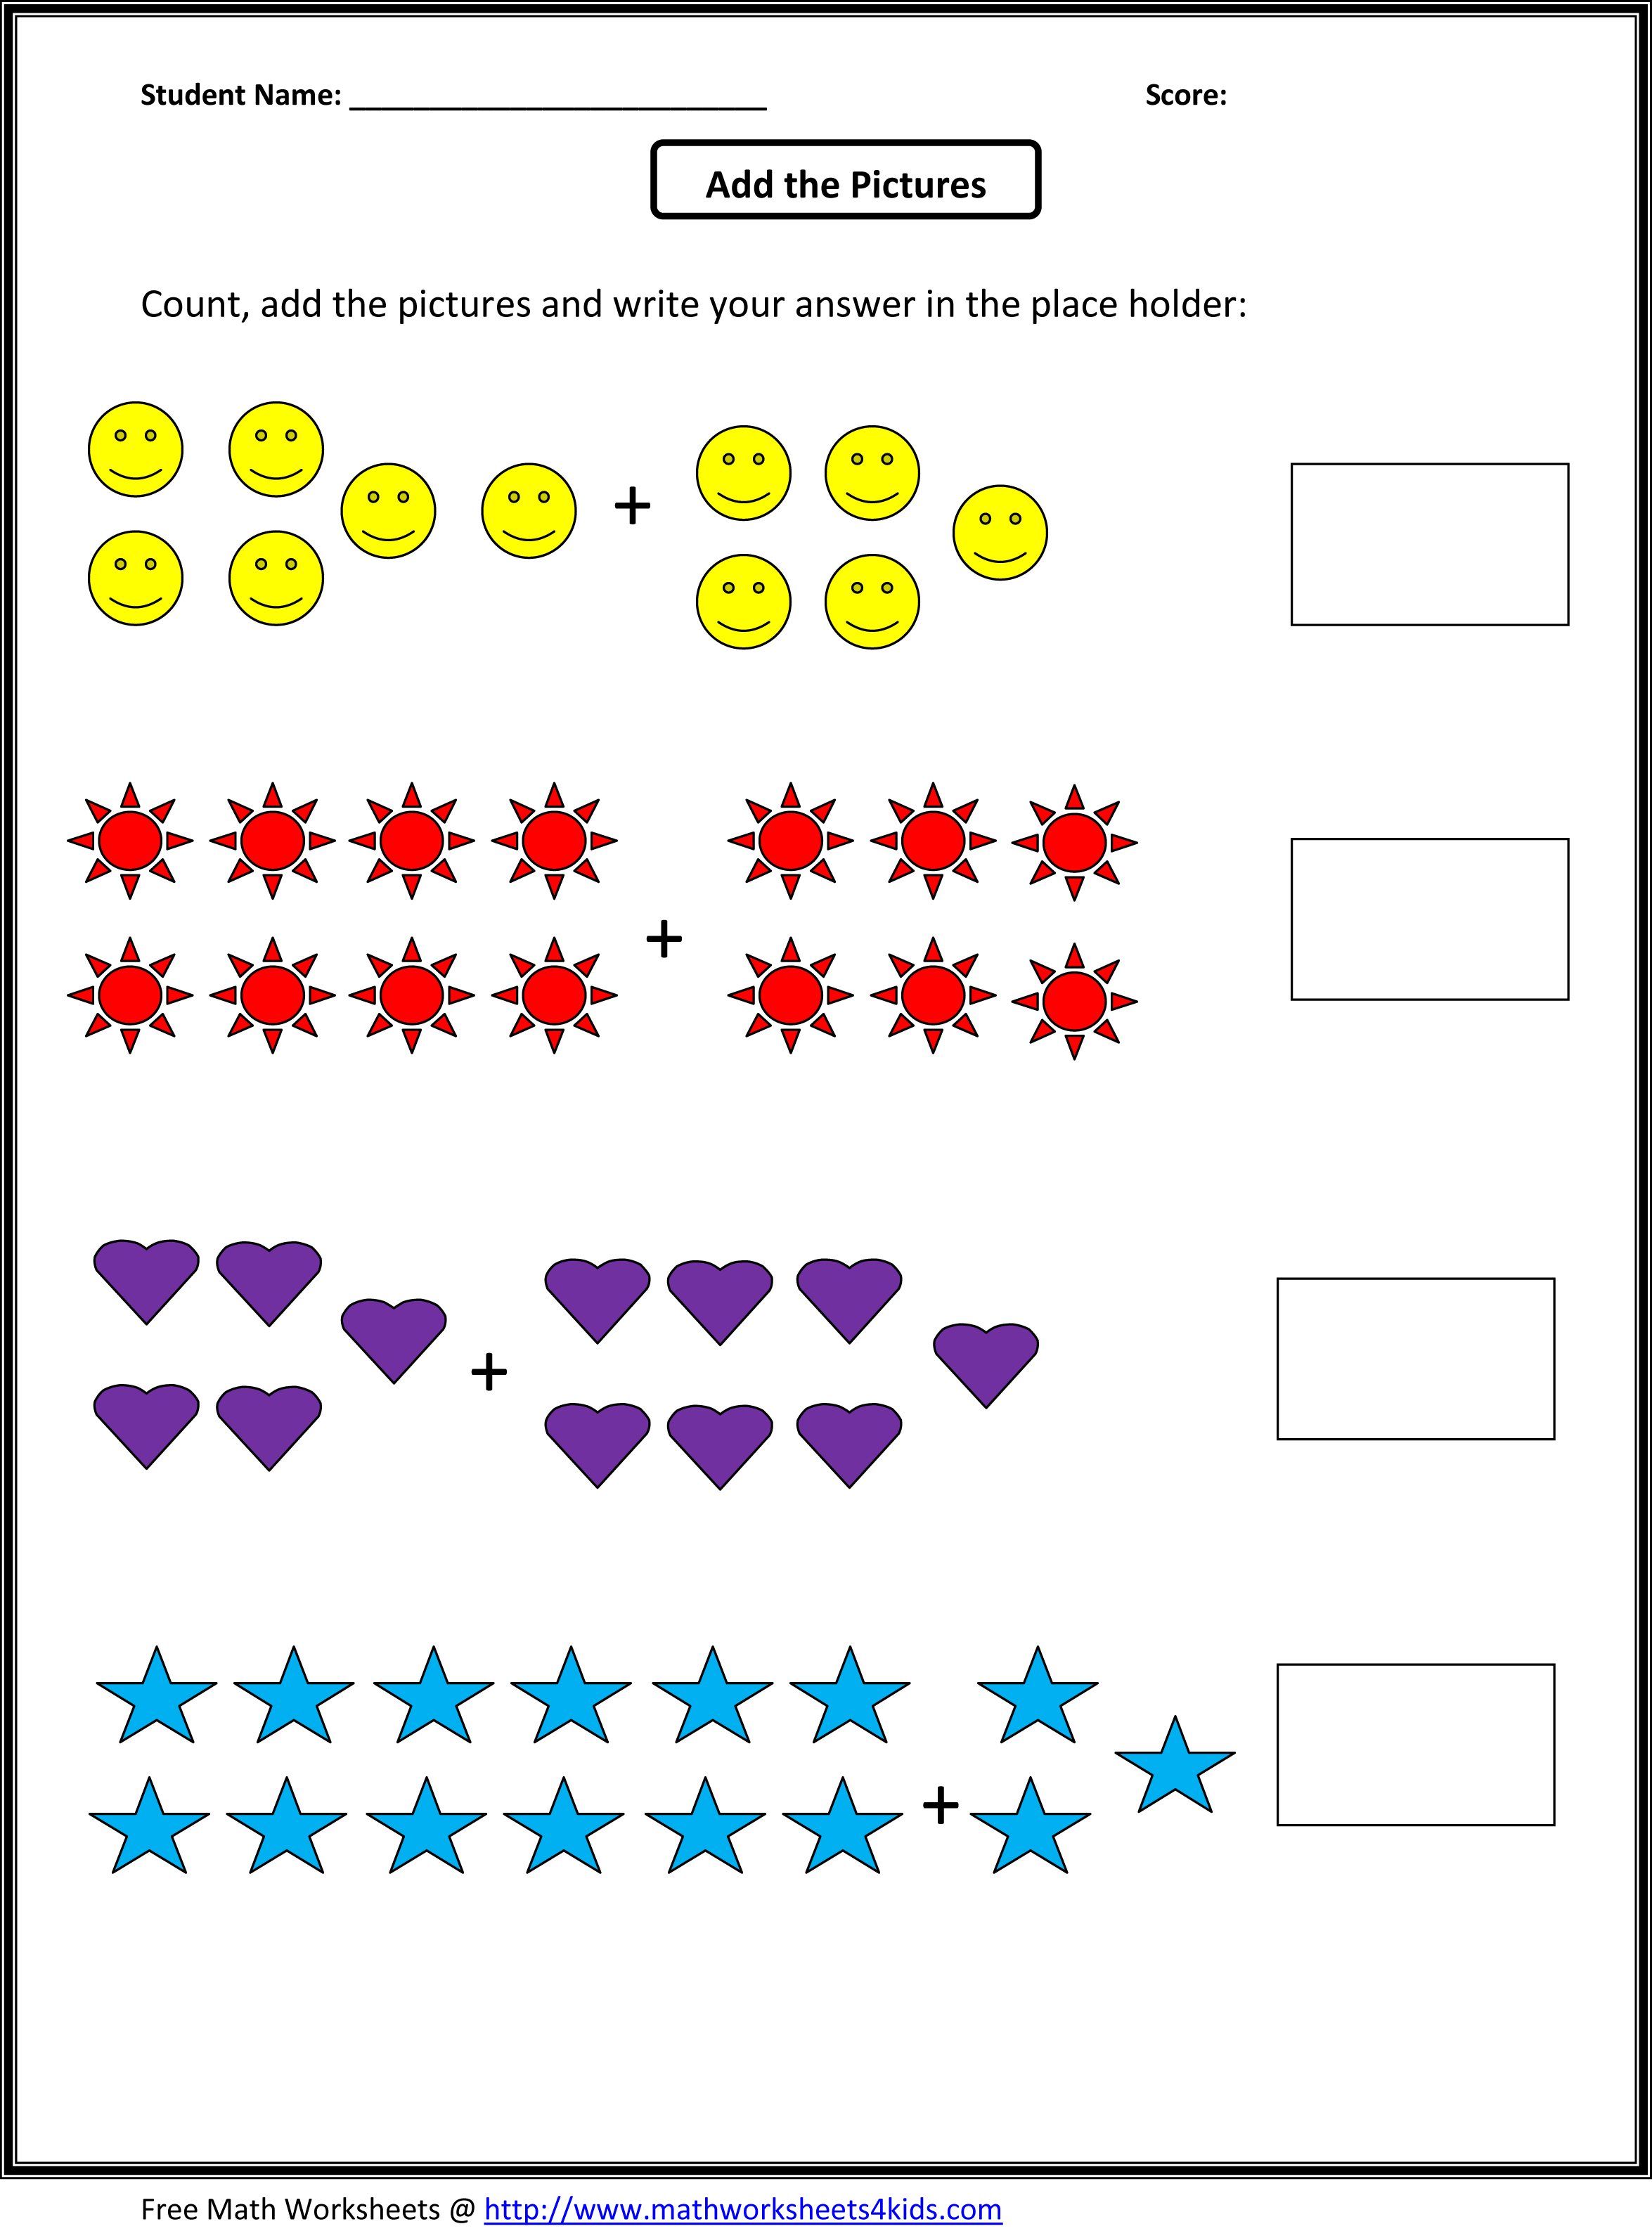 Weirdmailus  Ravishing Grade  Maths Worksheet  Reocurent With Lovable Math Worksheets For St Grade Free  Reocurent With Beauteous Measuring Angles With A Protractor Worksheets Also Free Context Clues Worksheets In Addition Graphing Absolute Value Worksheet And Adages And Proverbs Worksheets As Well As Beach Body Worksheets Additionally Point Of View Worksheets Nd Grade From Reocurentcom With Weirdmailus  Lovable Grade  Maths Worksheet  Reocurent With Beauteous Math Worksheets For St Grade Free  Reocurent And Ravishing Measuring Angles With A Protractor Worksheets Also Free Context Clues Worksheets In Addition Graphing Absolute Value Worksheet From Reocurentcom